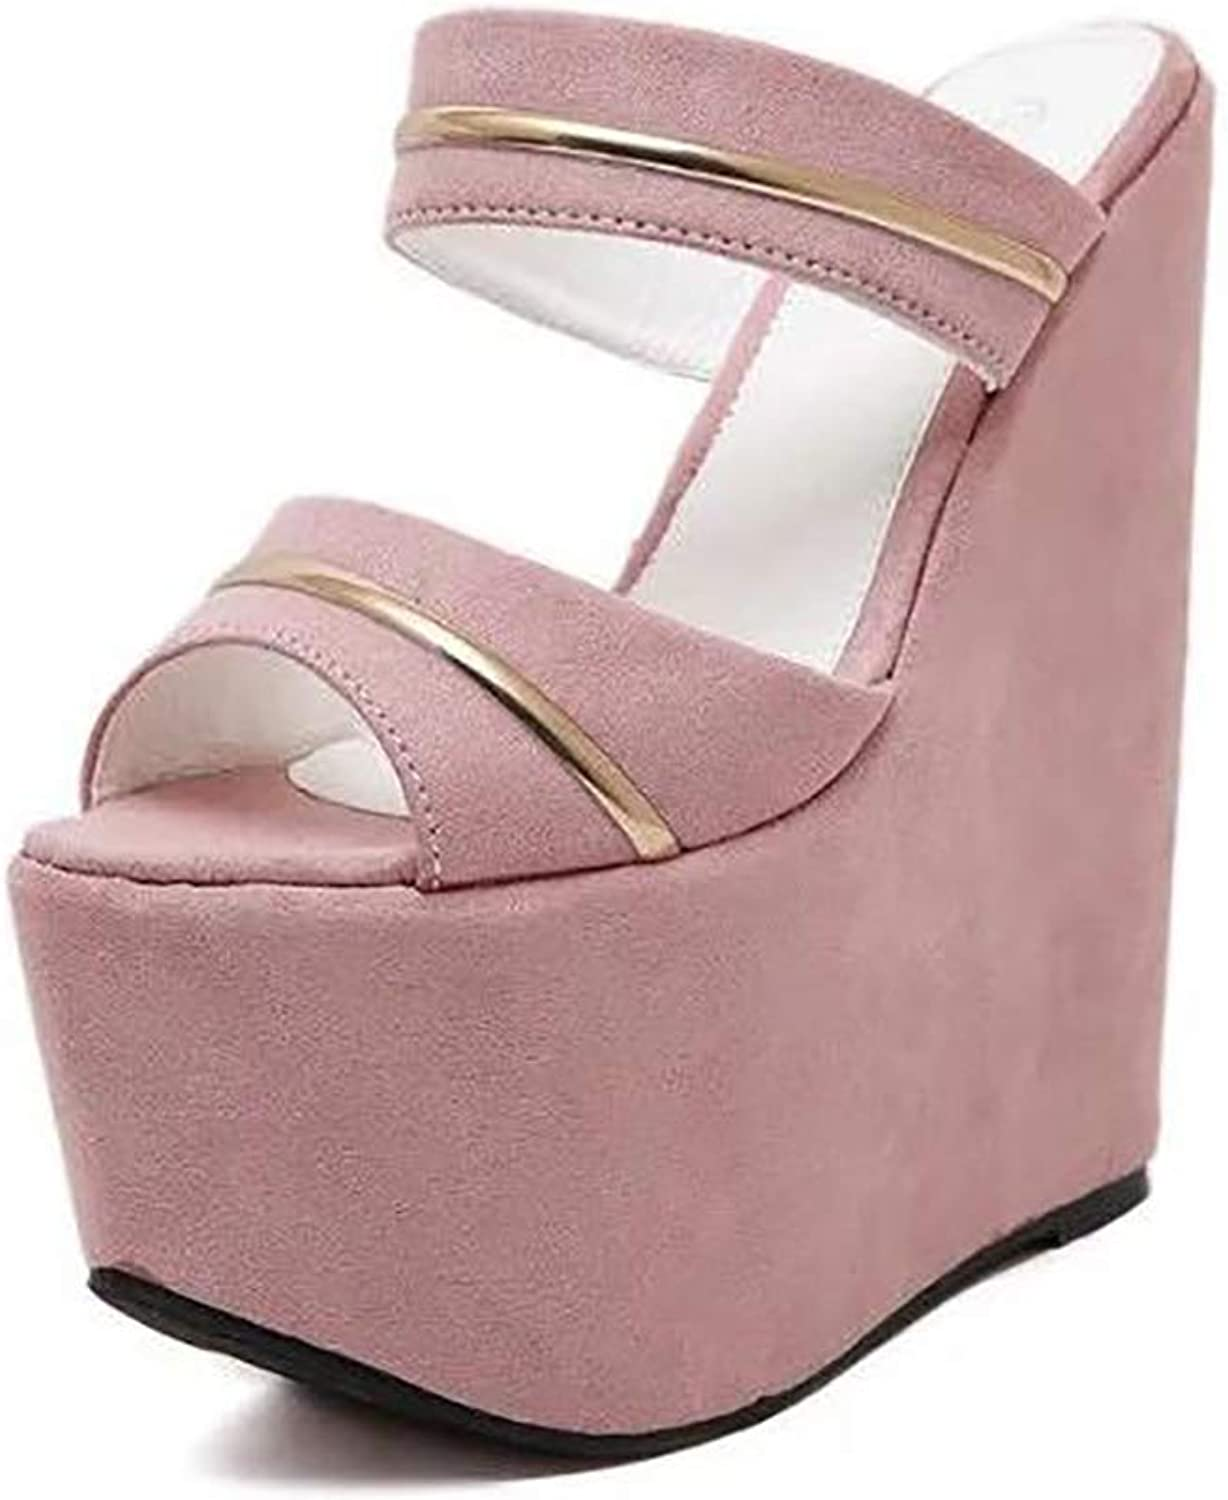 Women's Summer Beach Glitter Waterproof Peep Toe Wedge Platform High Heel Outdoor shoes